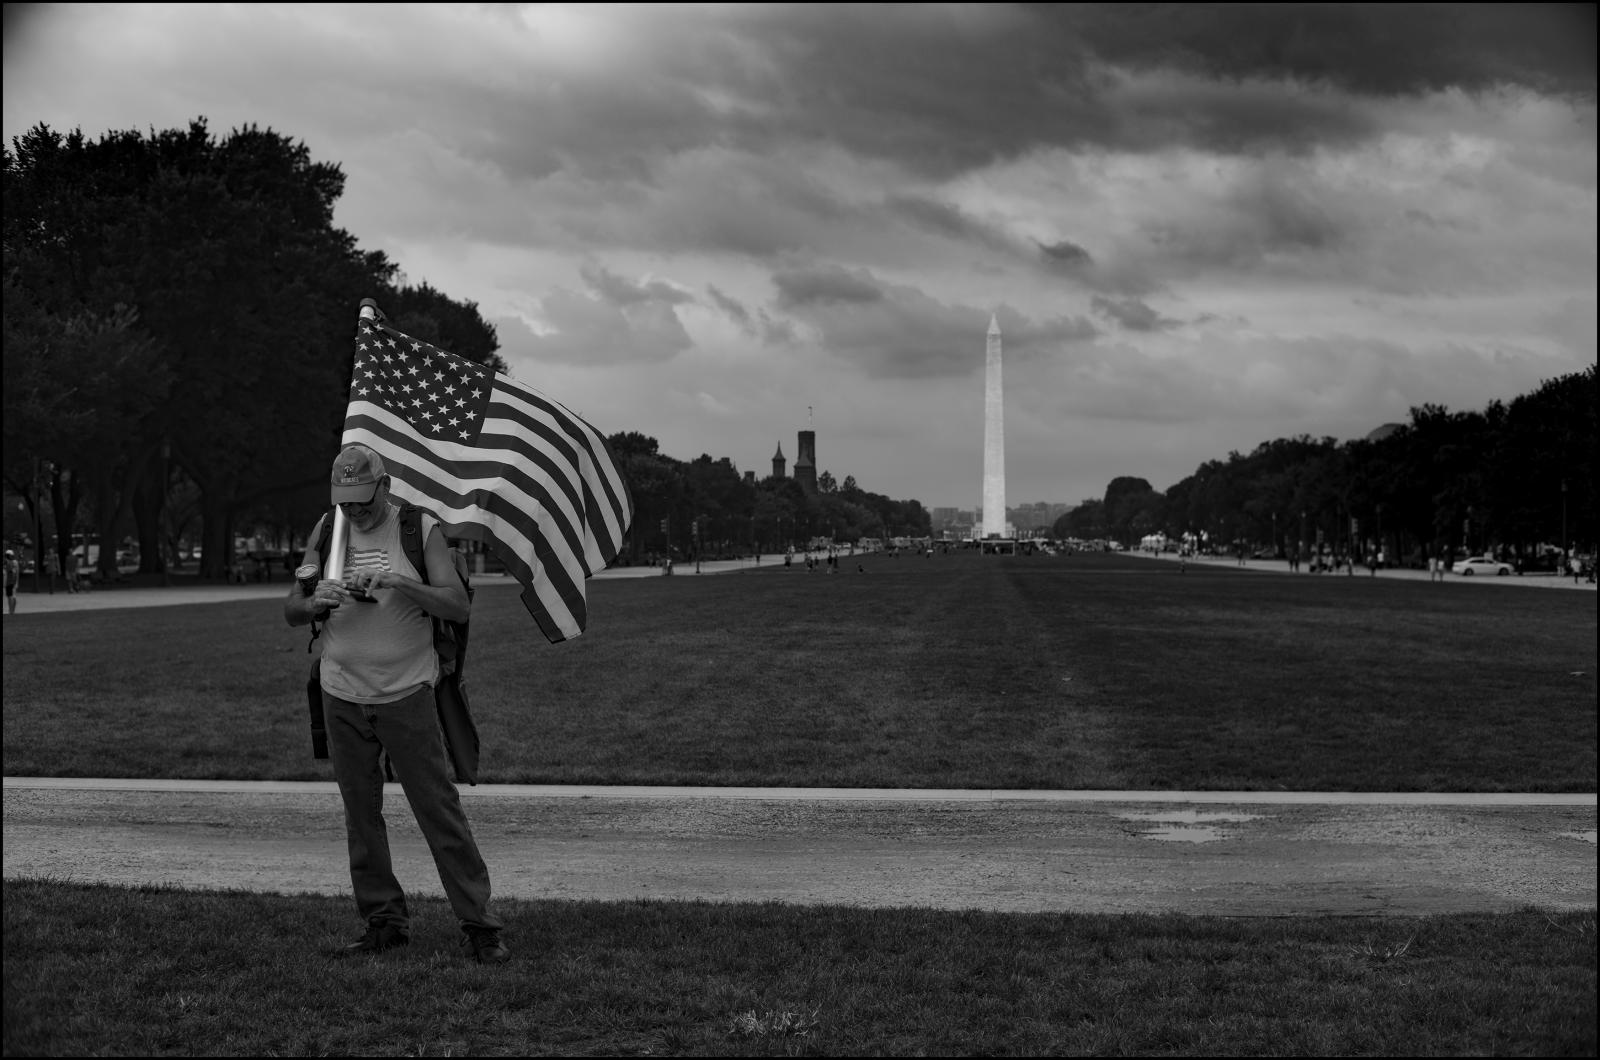 Decked in patriotic attire and with U.S. Flag. Prior to J6 Rally, Washington D.C. 09/18/21.